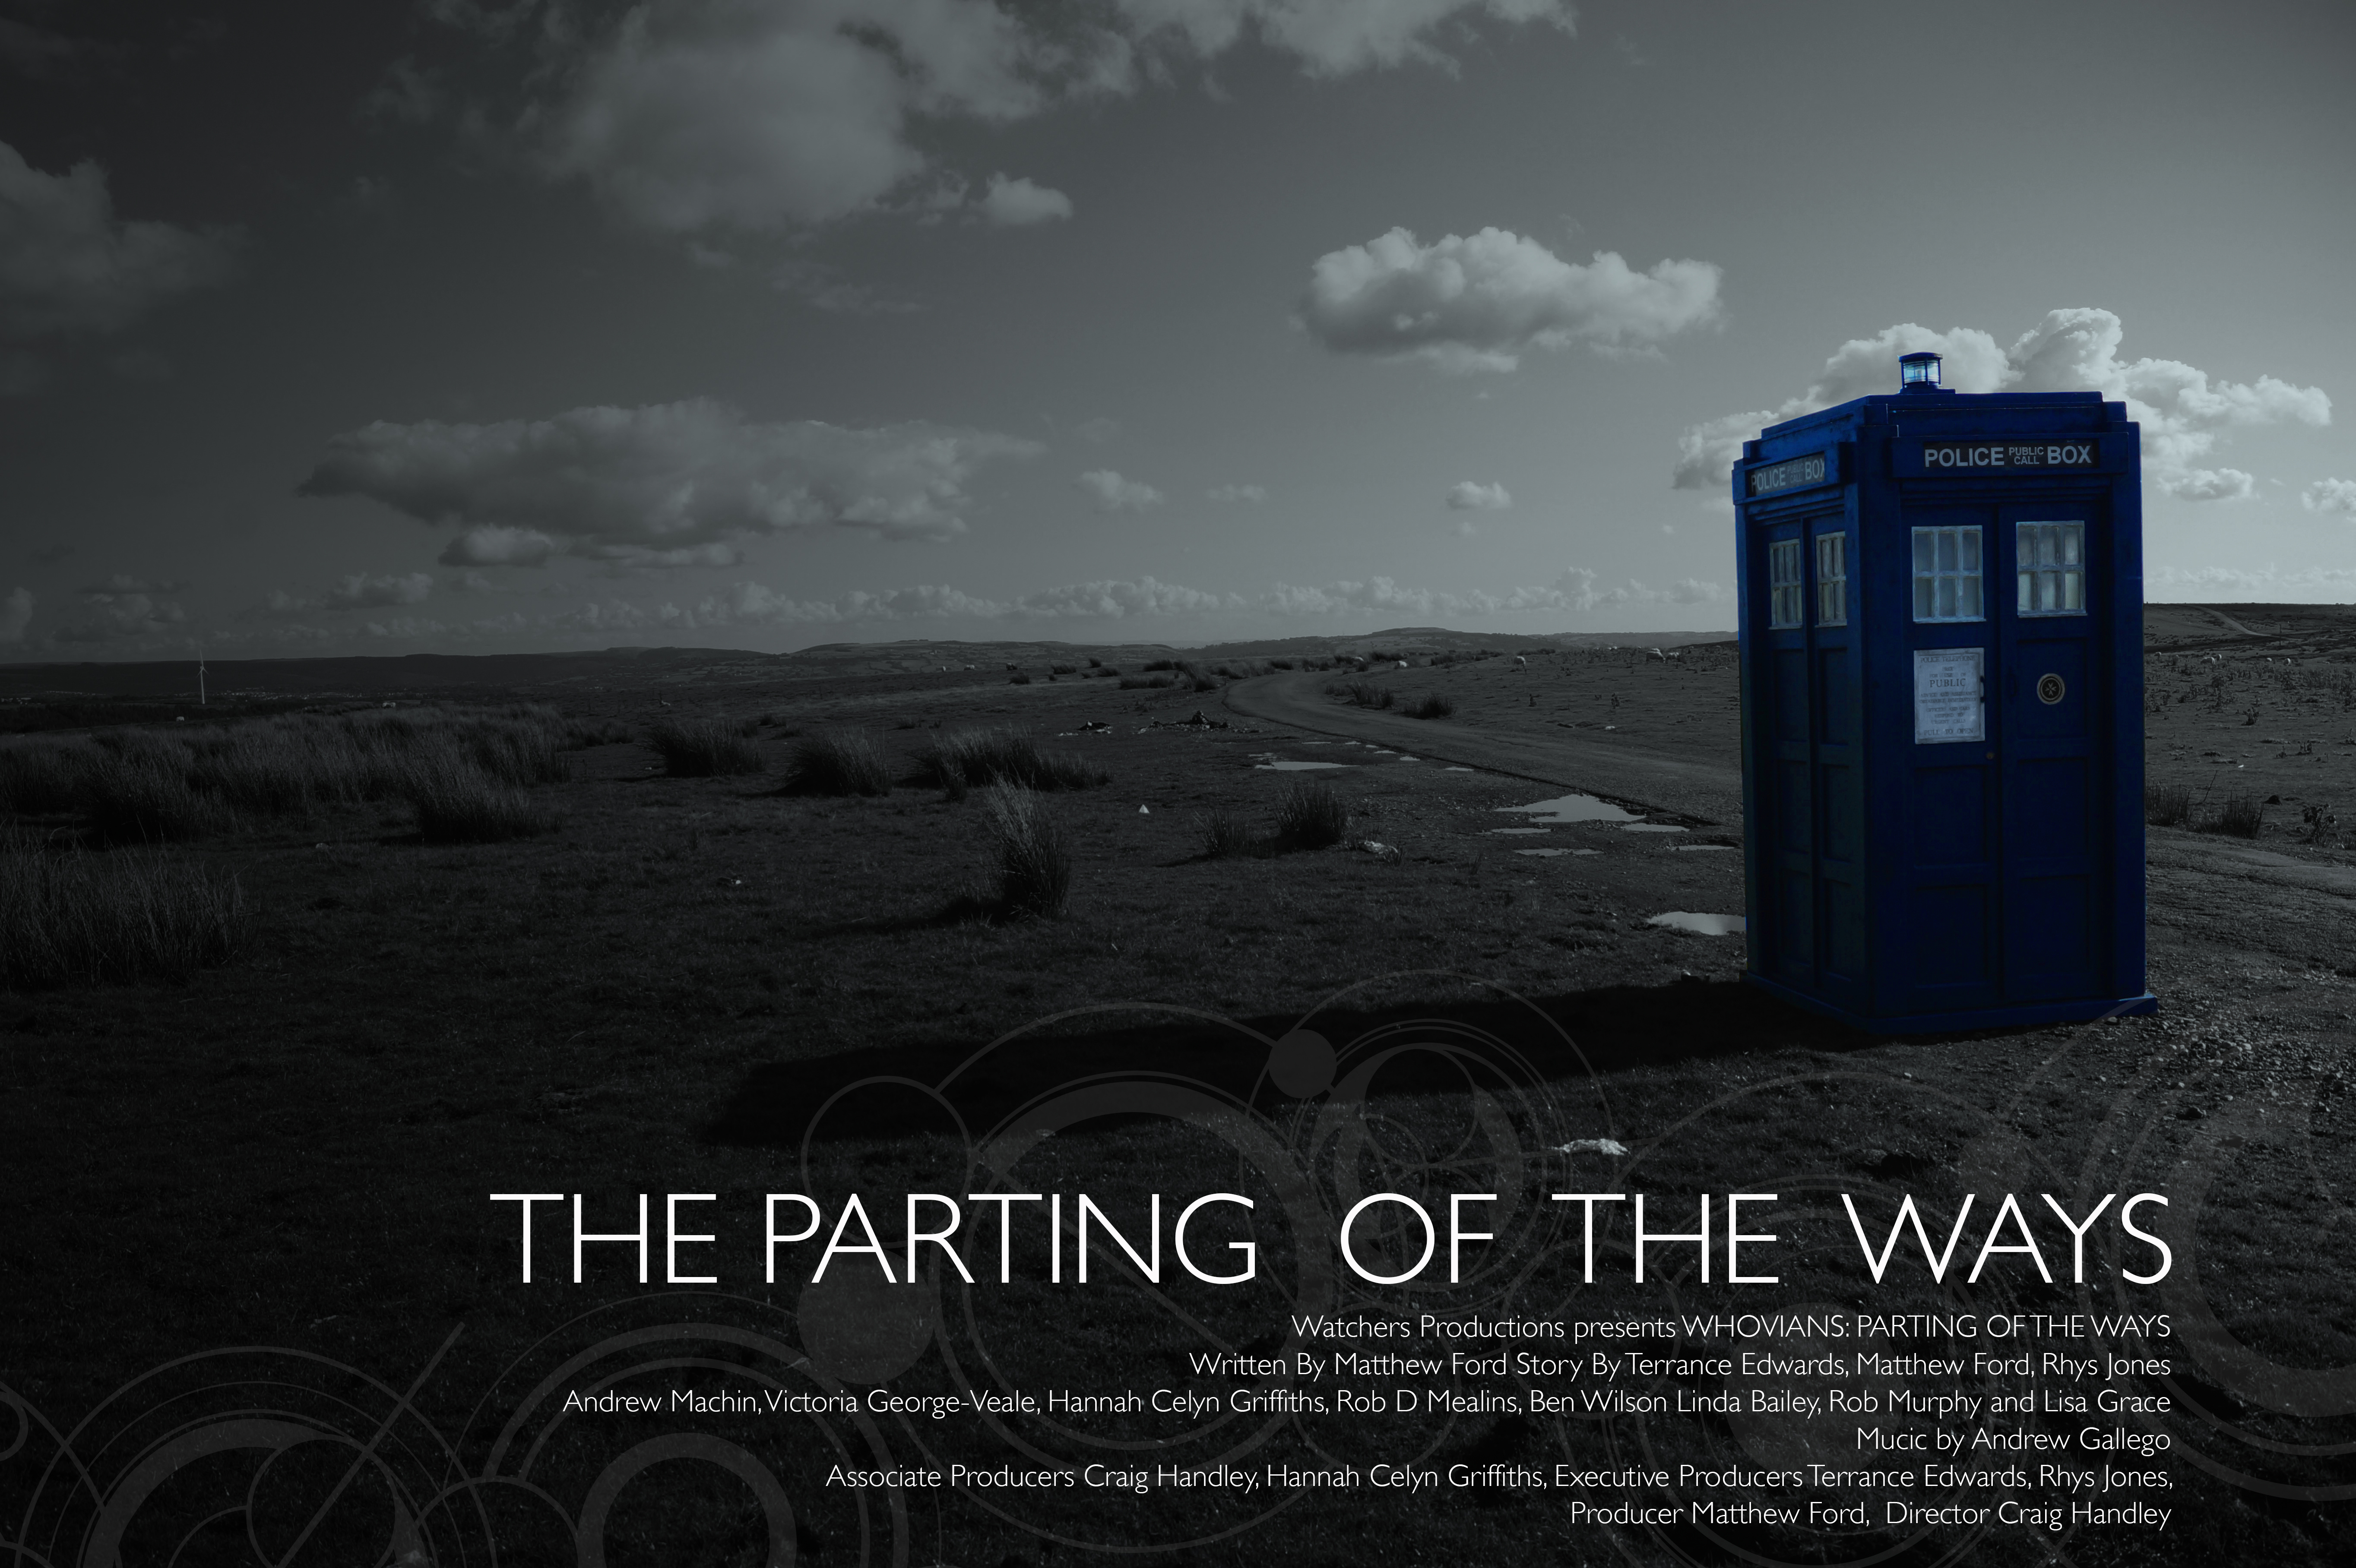 Episode 2.6 The Parting Of The Ways